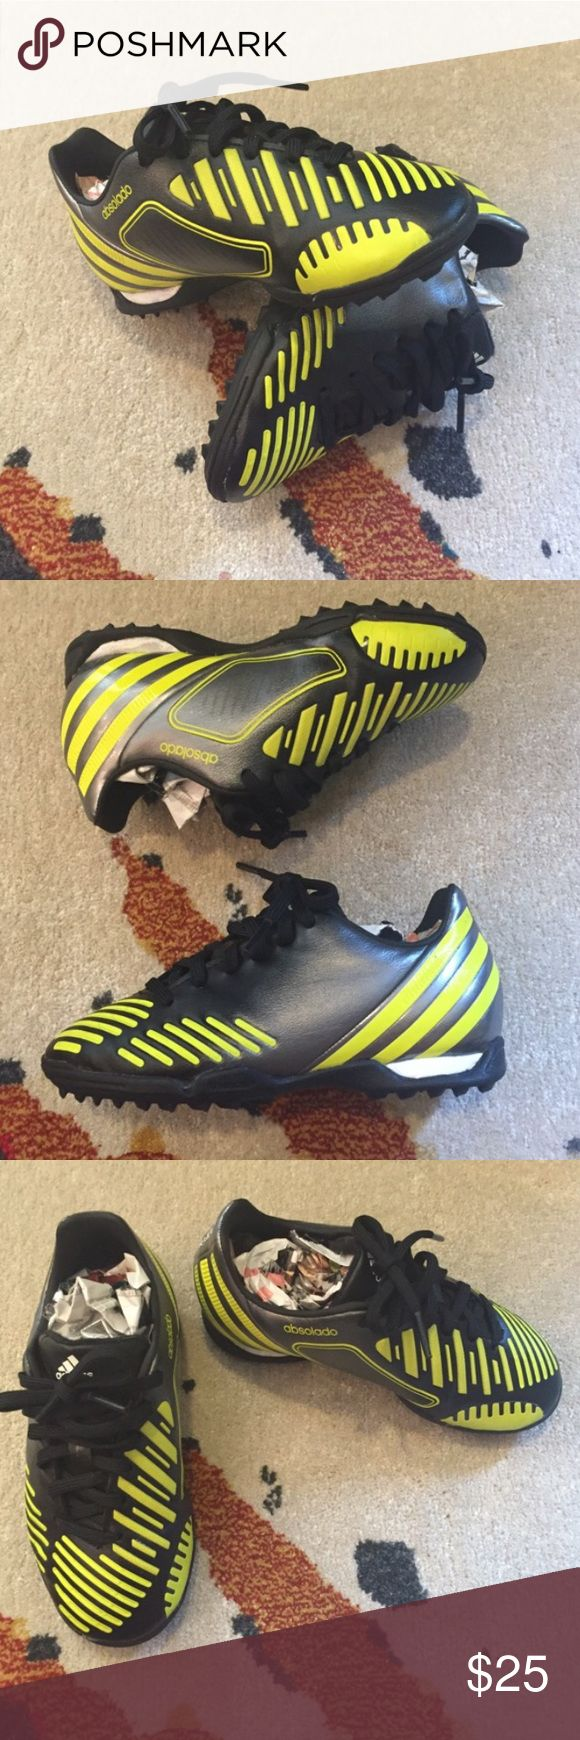 Kids Adidas Soccer Predators Tennis Shoes Brand new w/out tags Adidas Indoor Soccer Shoes w/ black and neon design. (11K) Adidas Shoes Sneakers